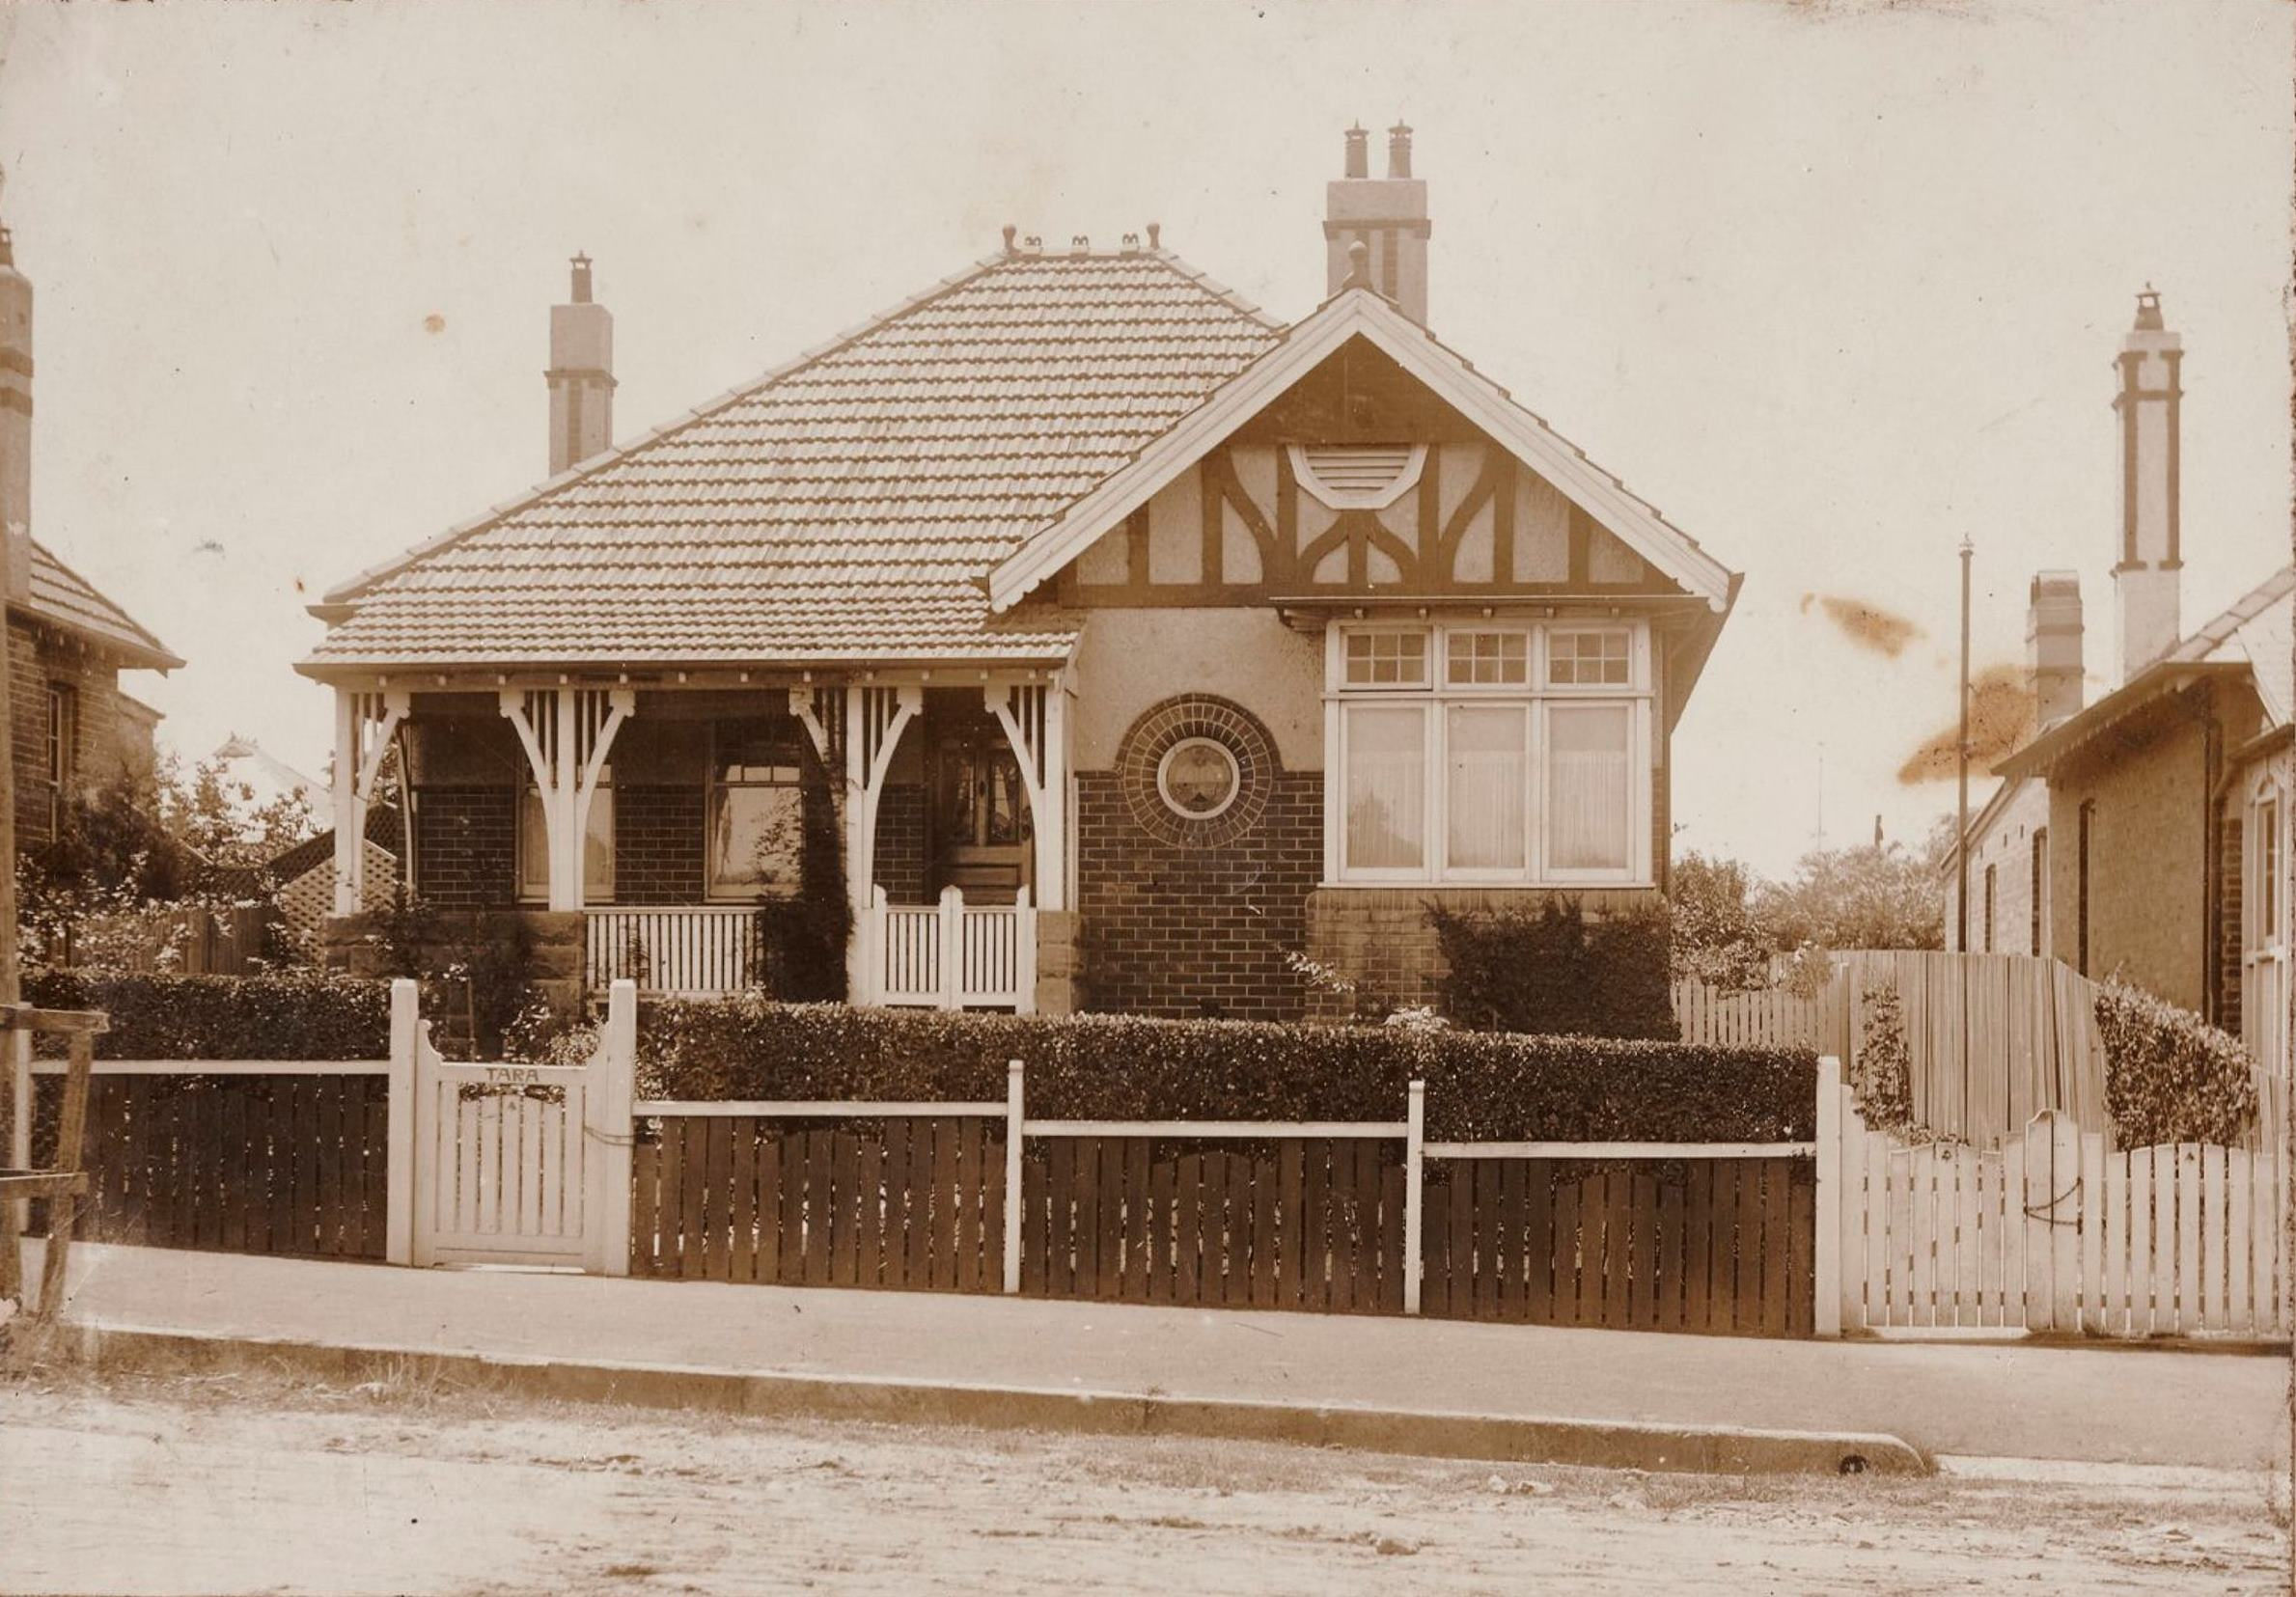 Tara, 29 Barton Avenue, Haberfield, N.S.W. around 1913 / photographer unknown